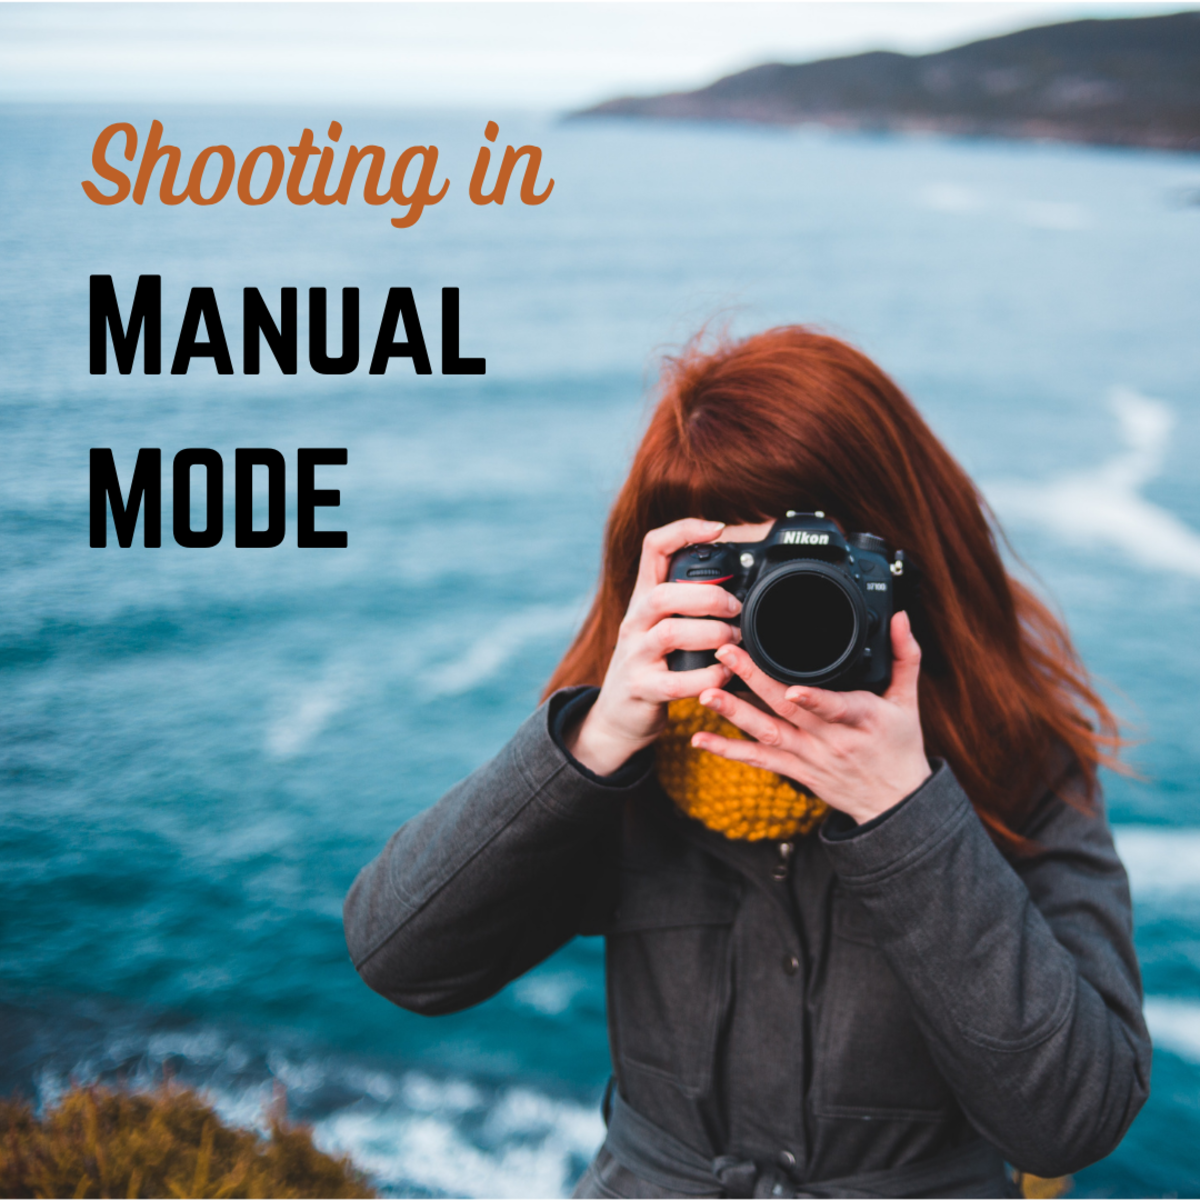 Once you understand exposure, you can shoot in manual mode.